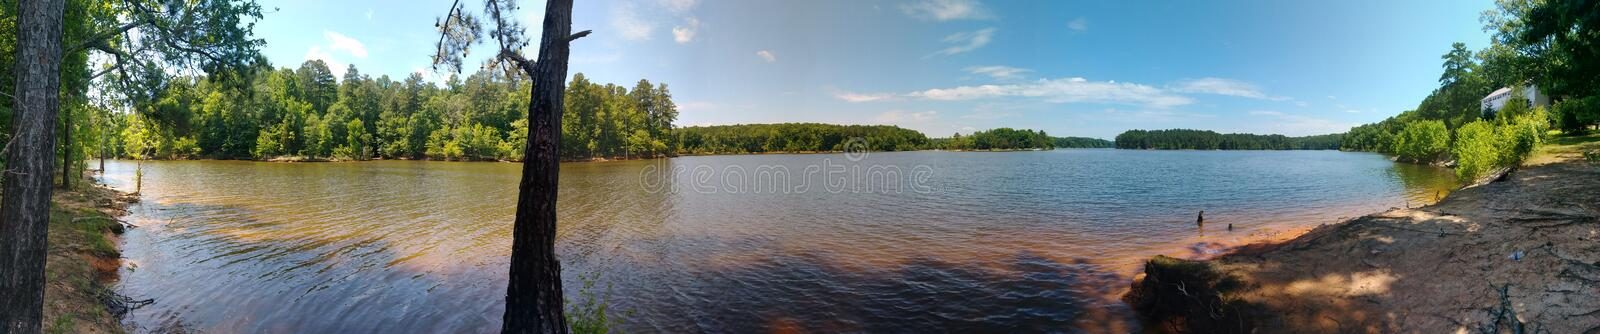 A day at the lake royalty free stock images